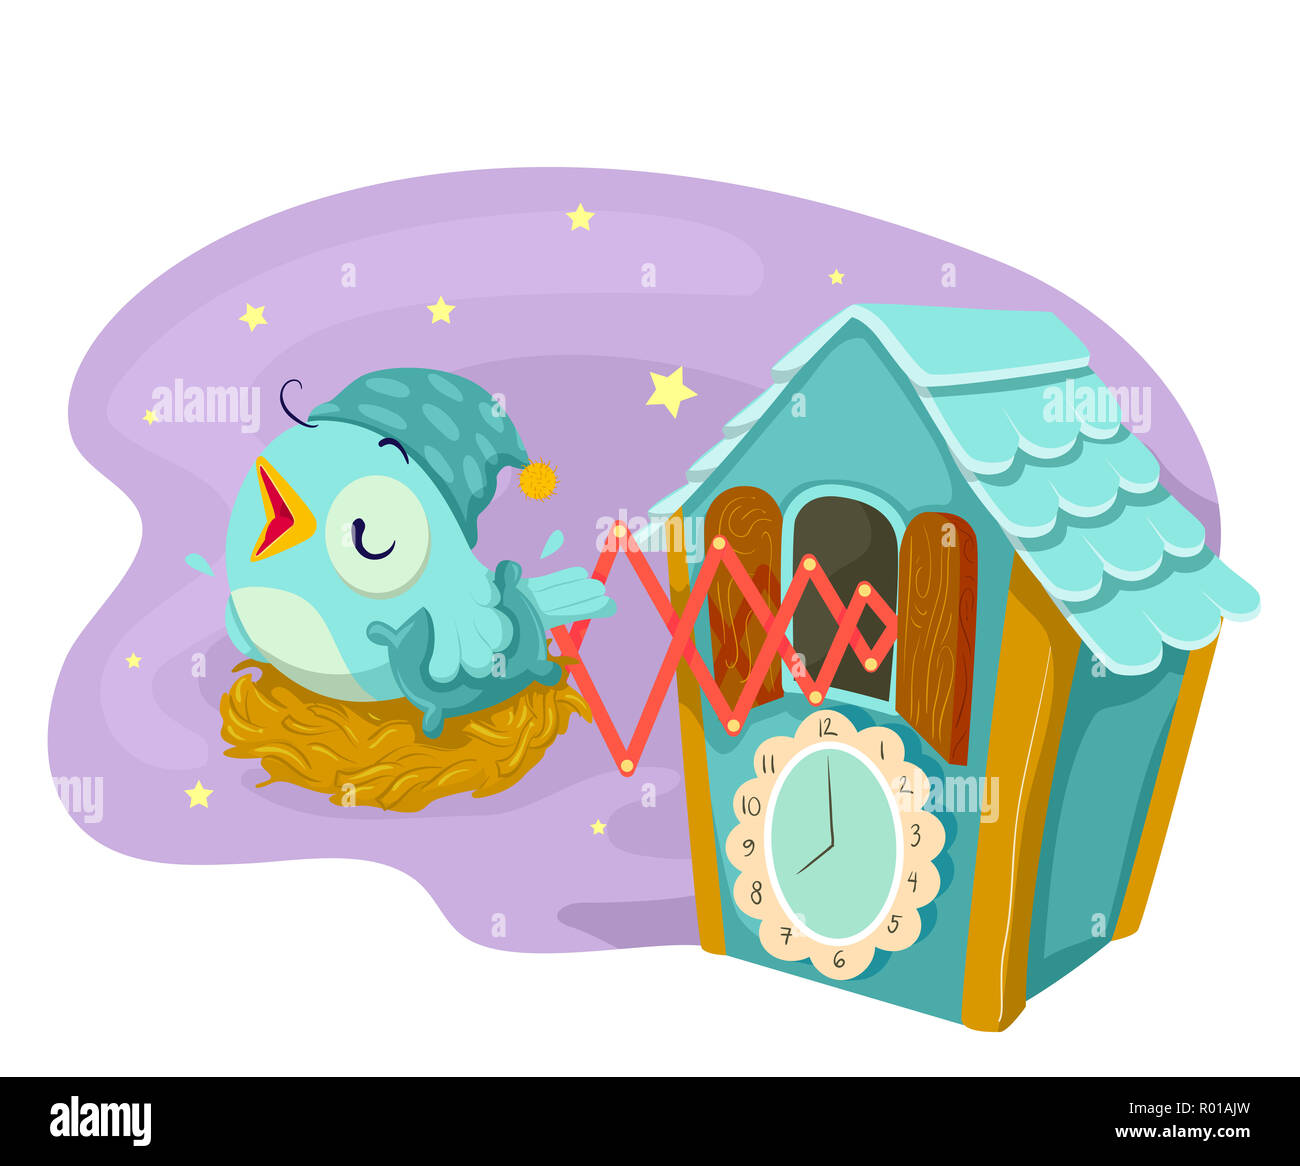 illustration of cuckoo clock chirping during bed time with the bird